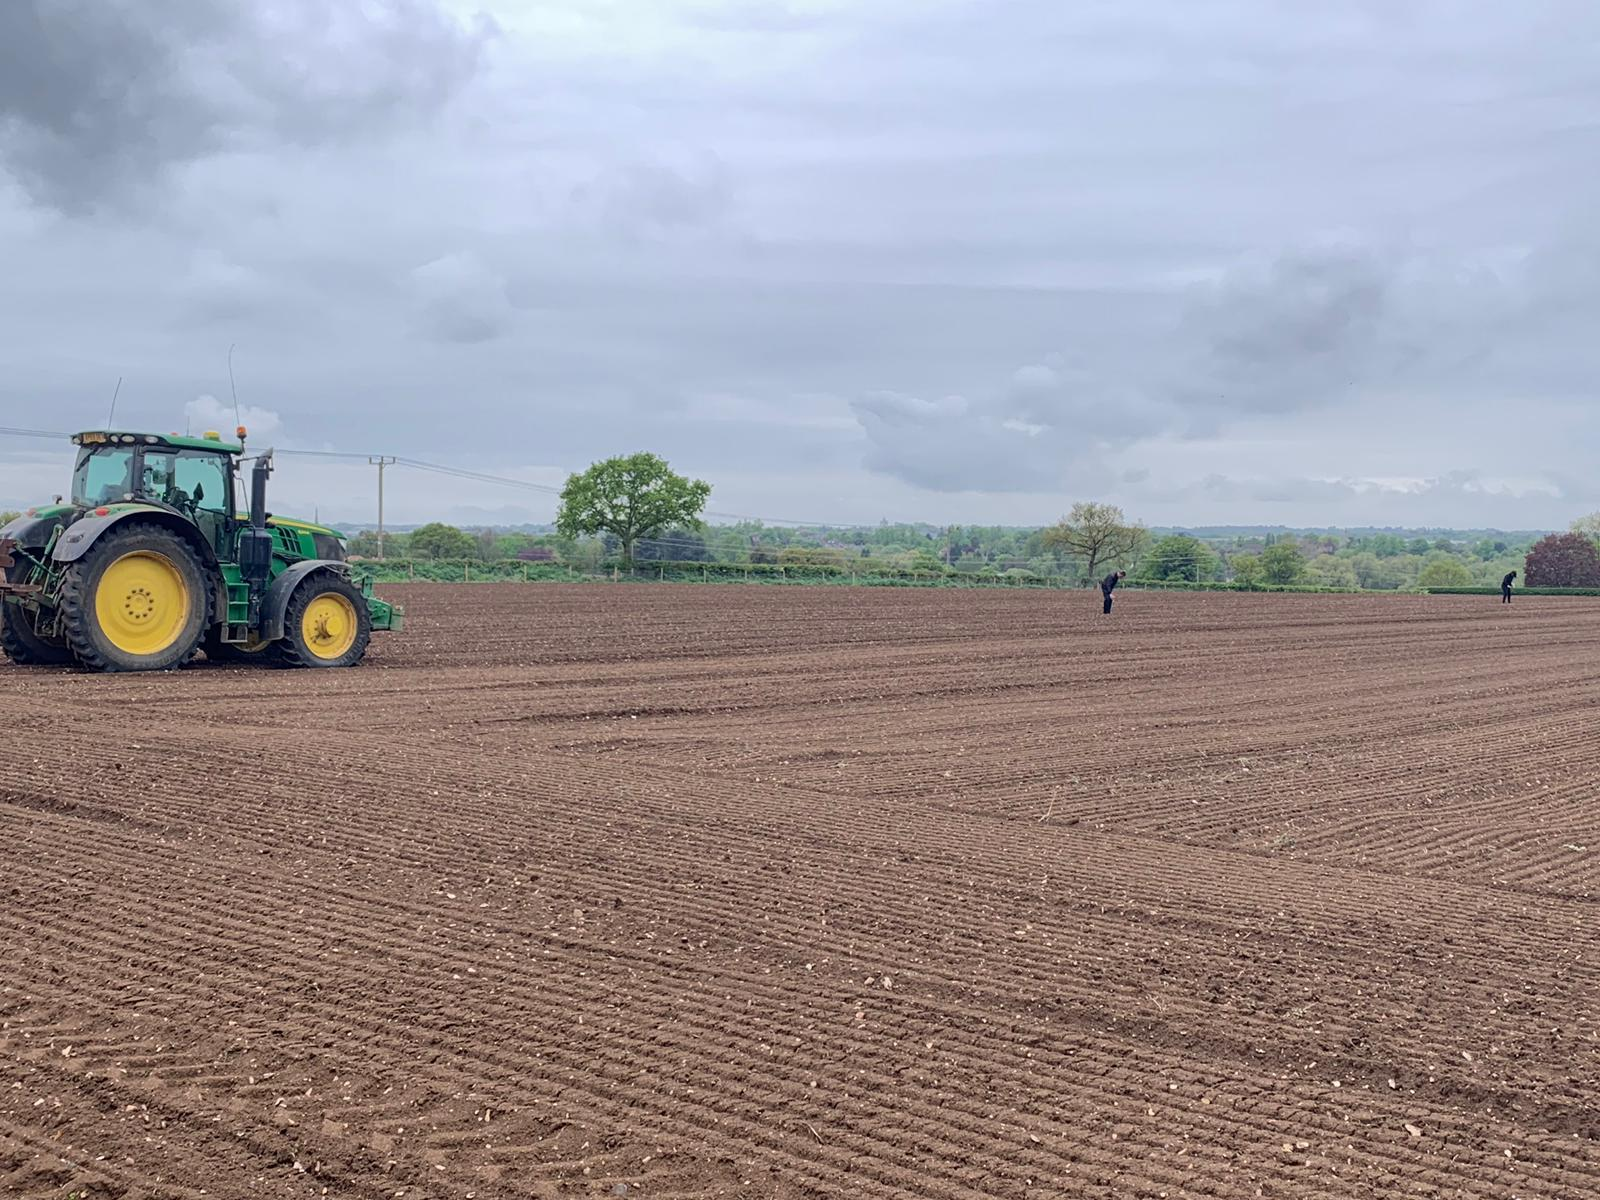 10,000 Seeds Planted for 100% Charity Pumpkin Patch